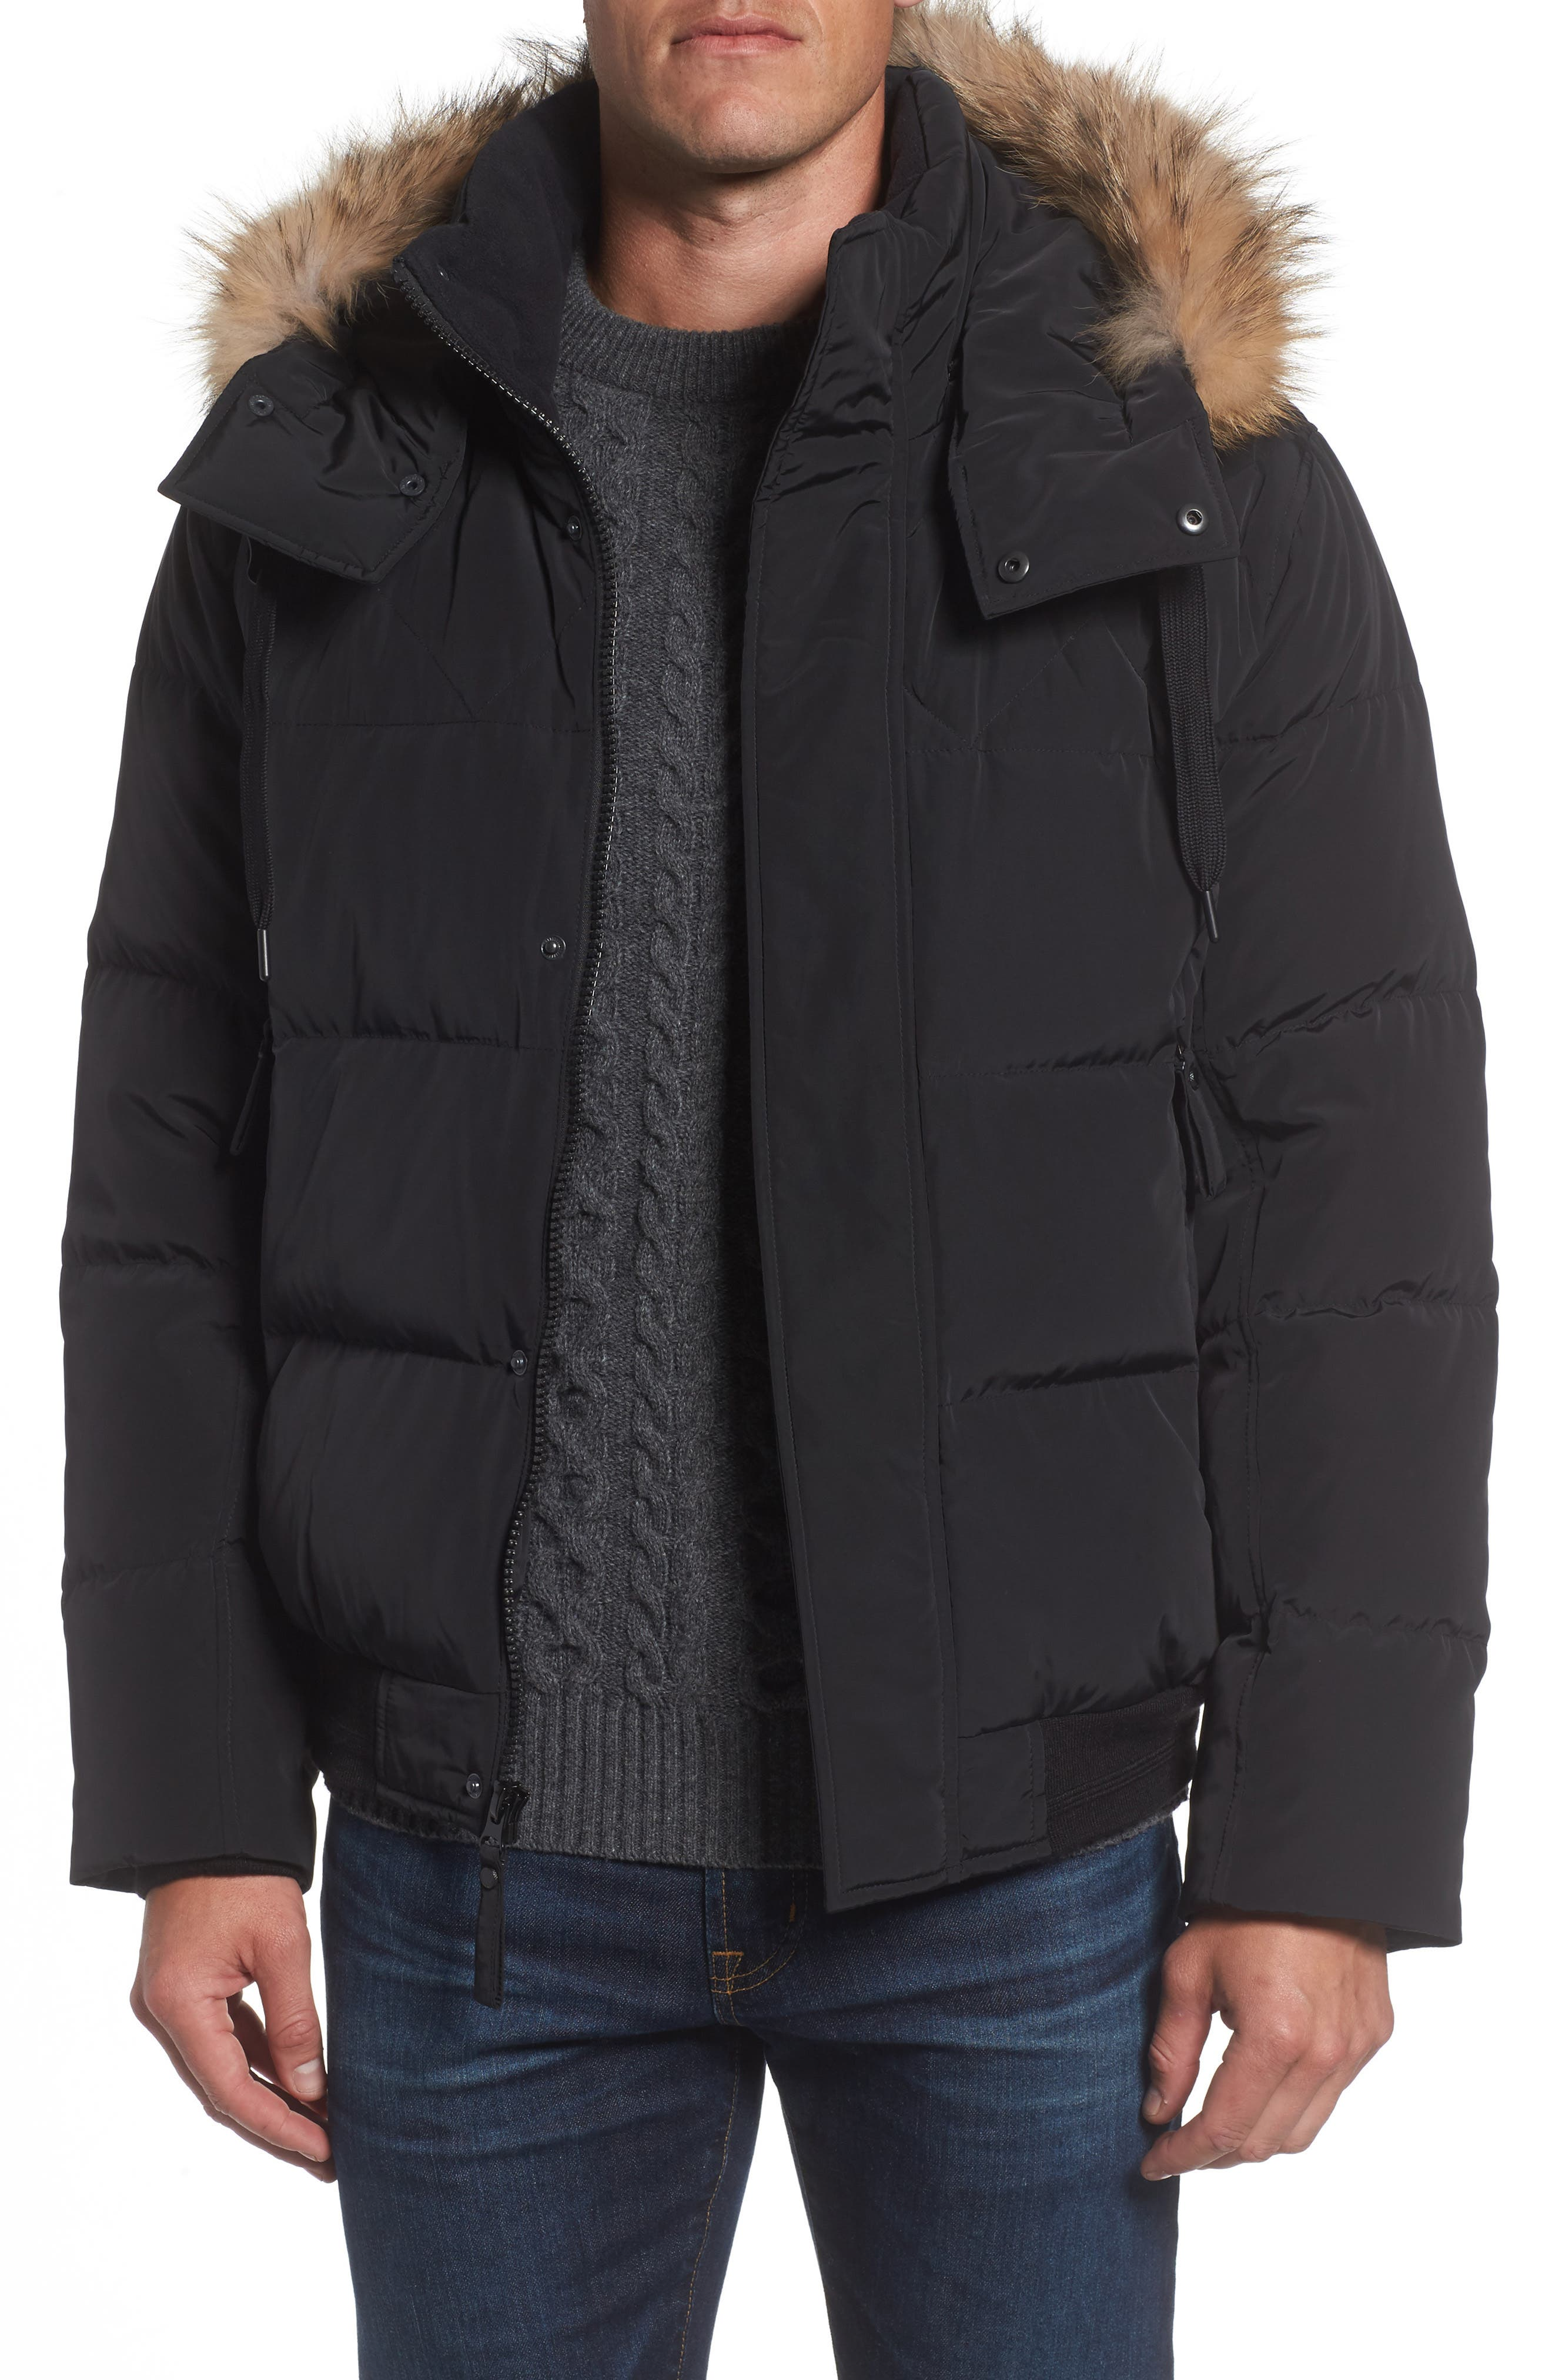 Insulated Jacket with Genuine Coyote Fur,                         Main,                         color, Black